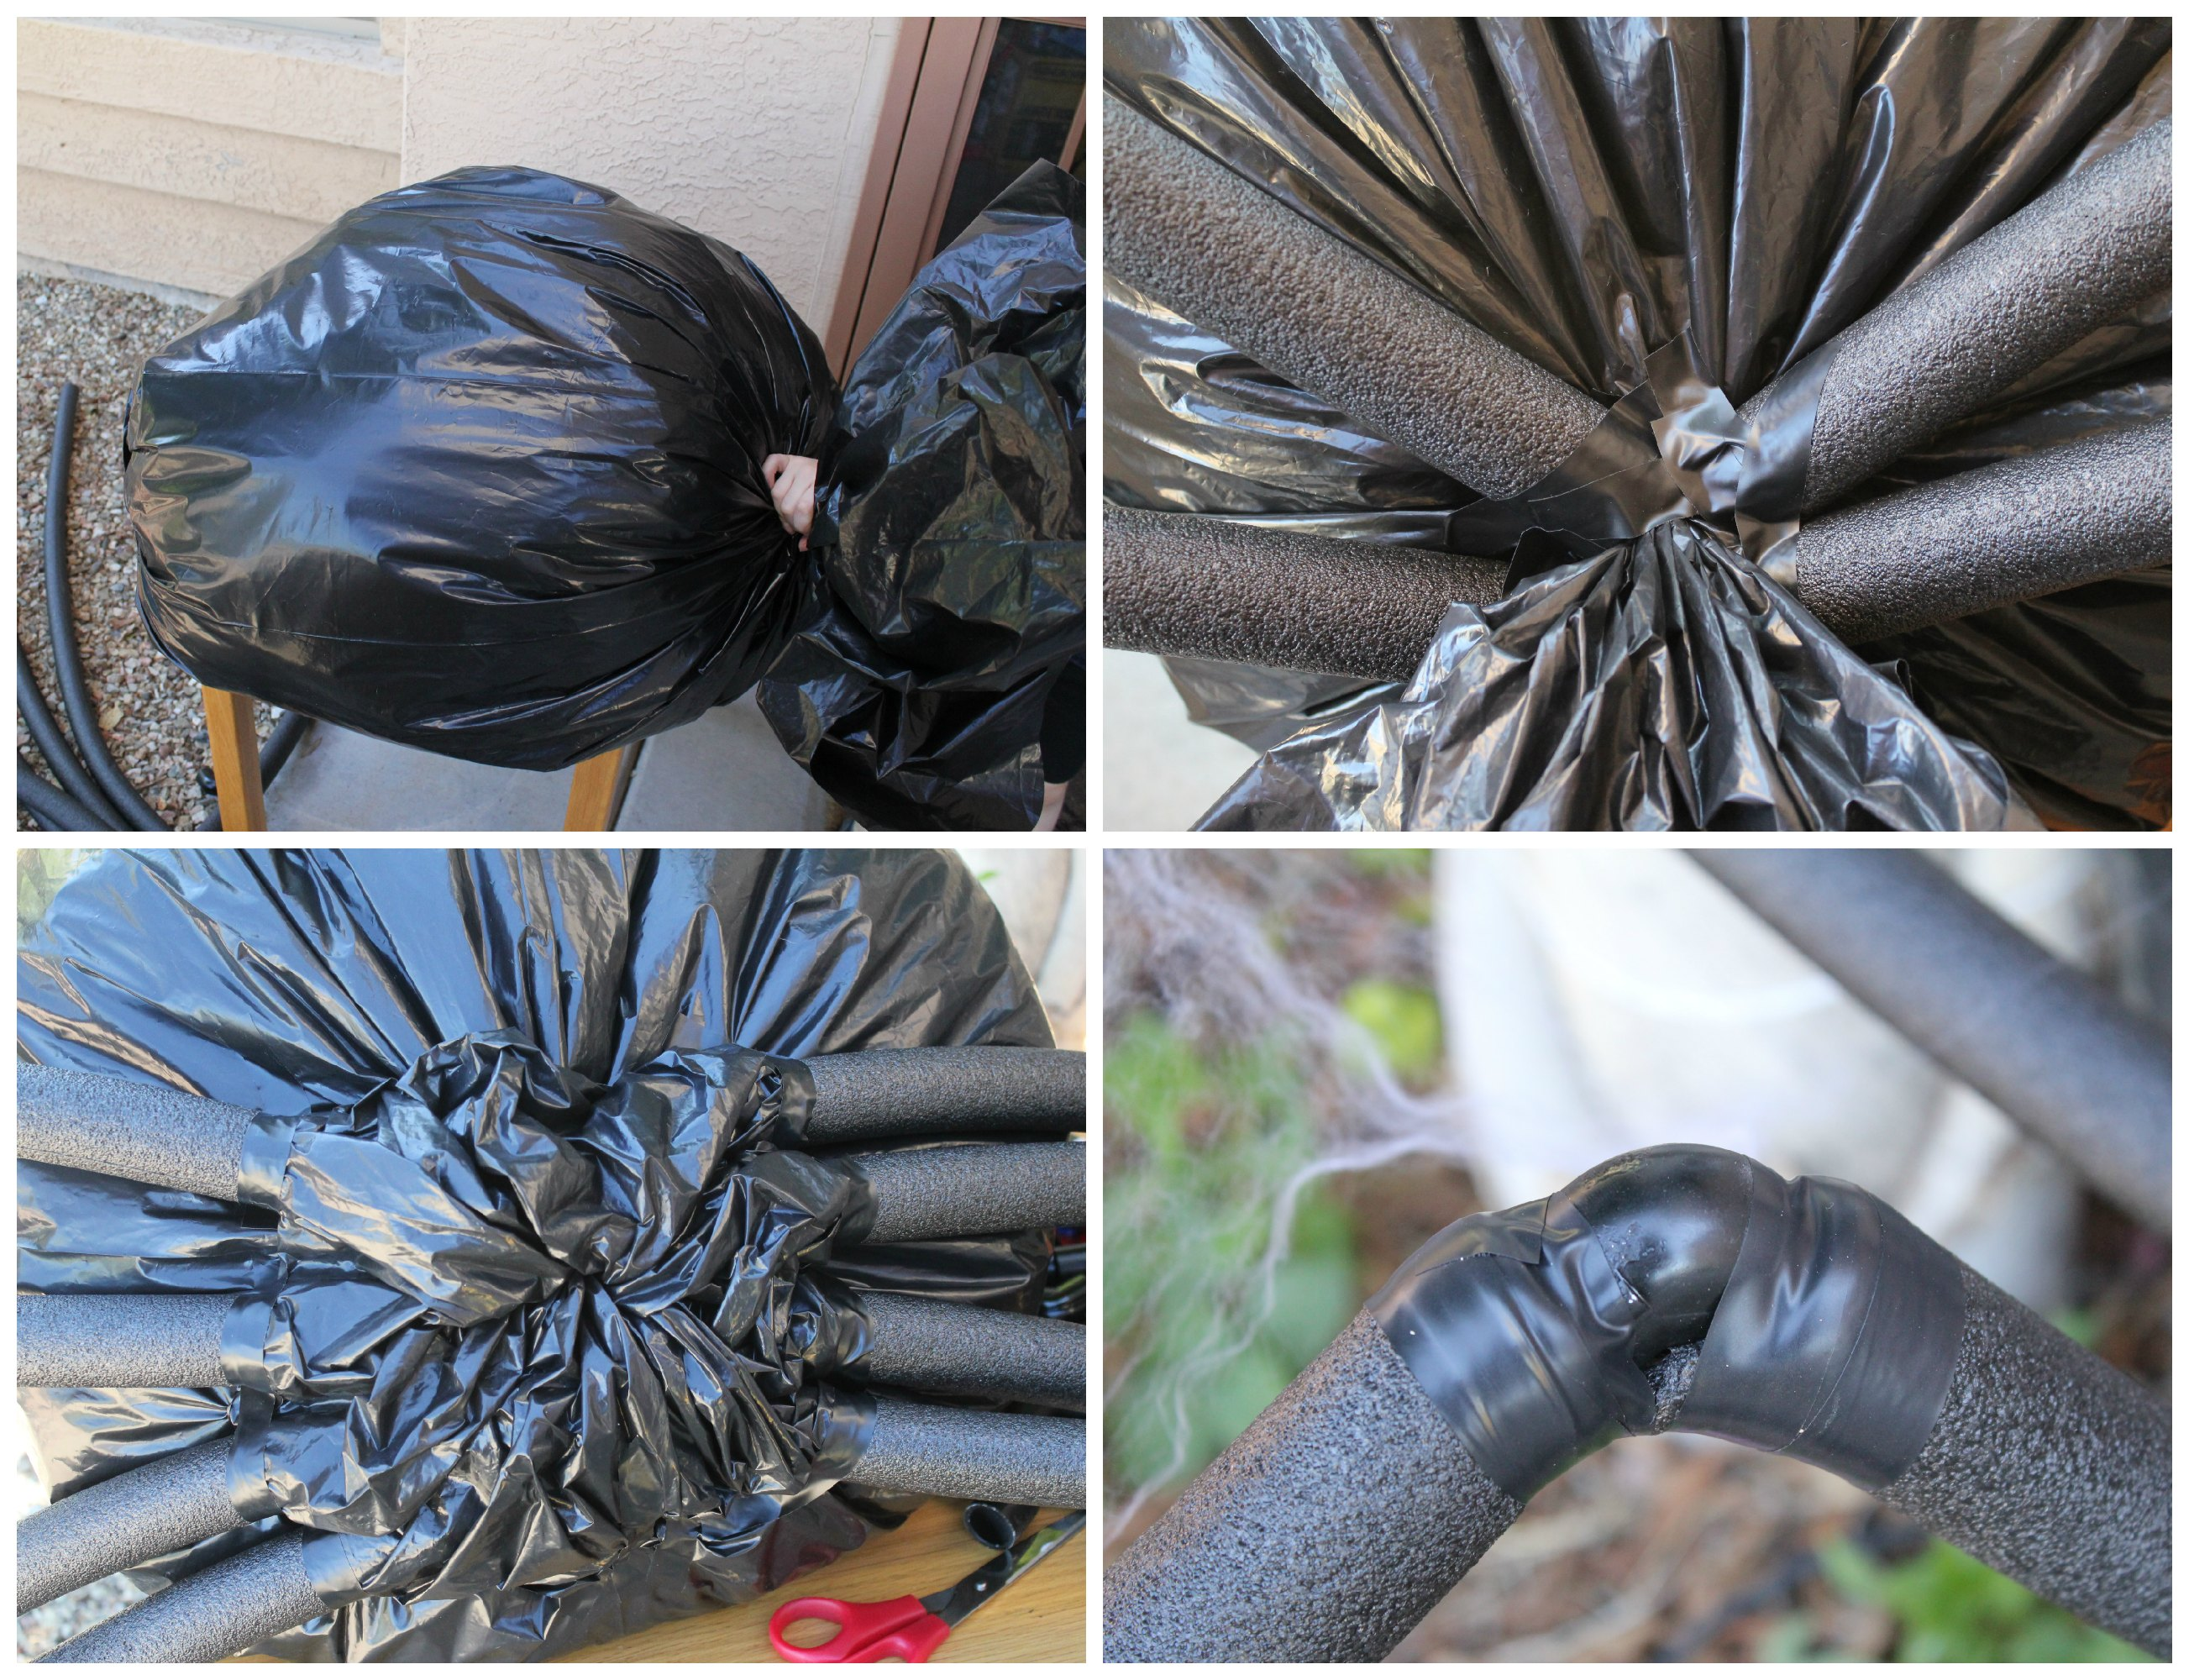 Halloween yard decorations diy - Making A Giant Yard Spider For Halloween